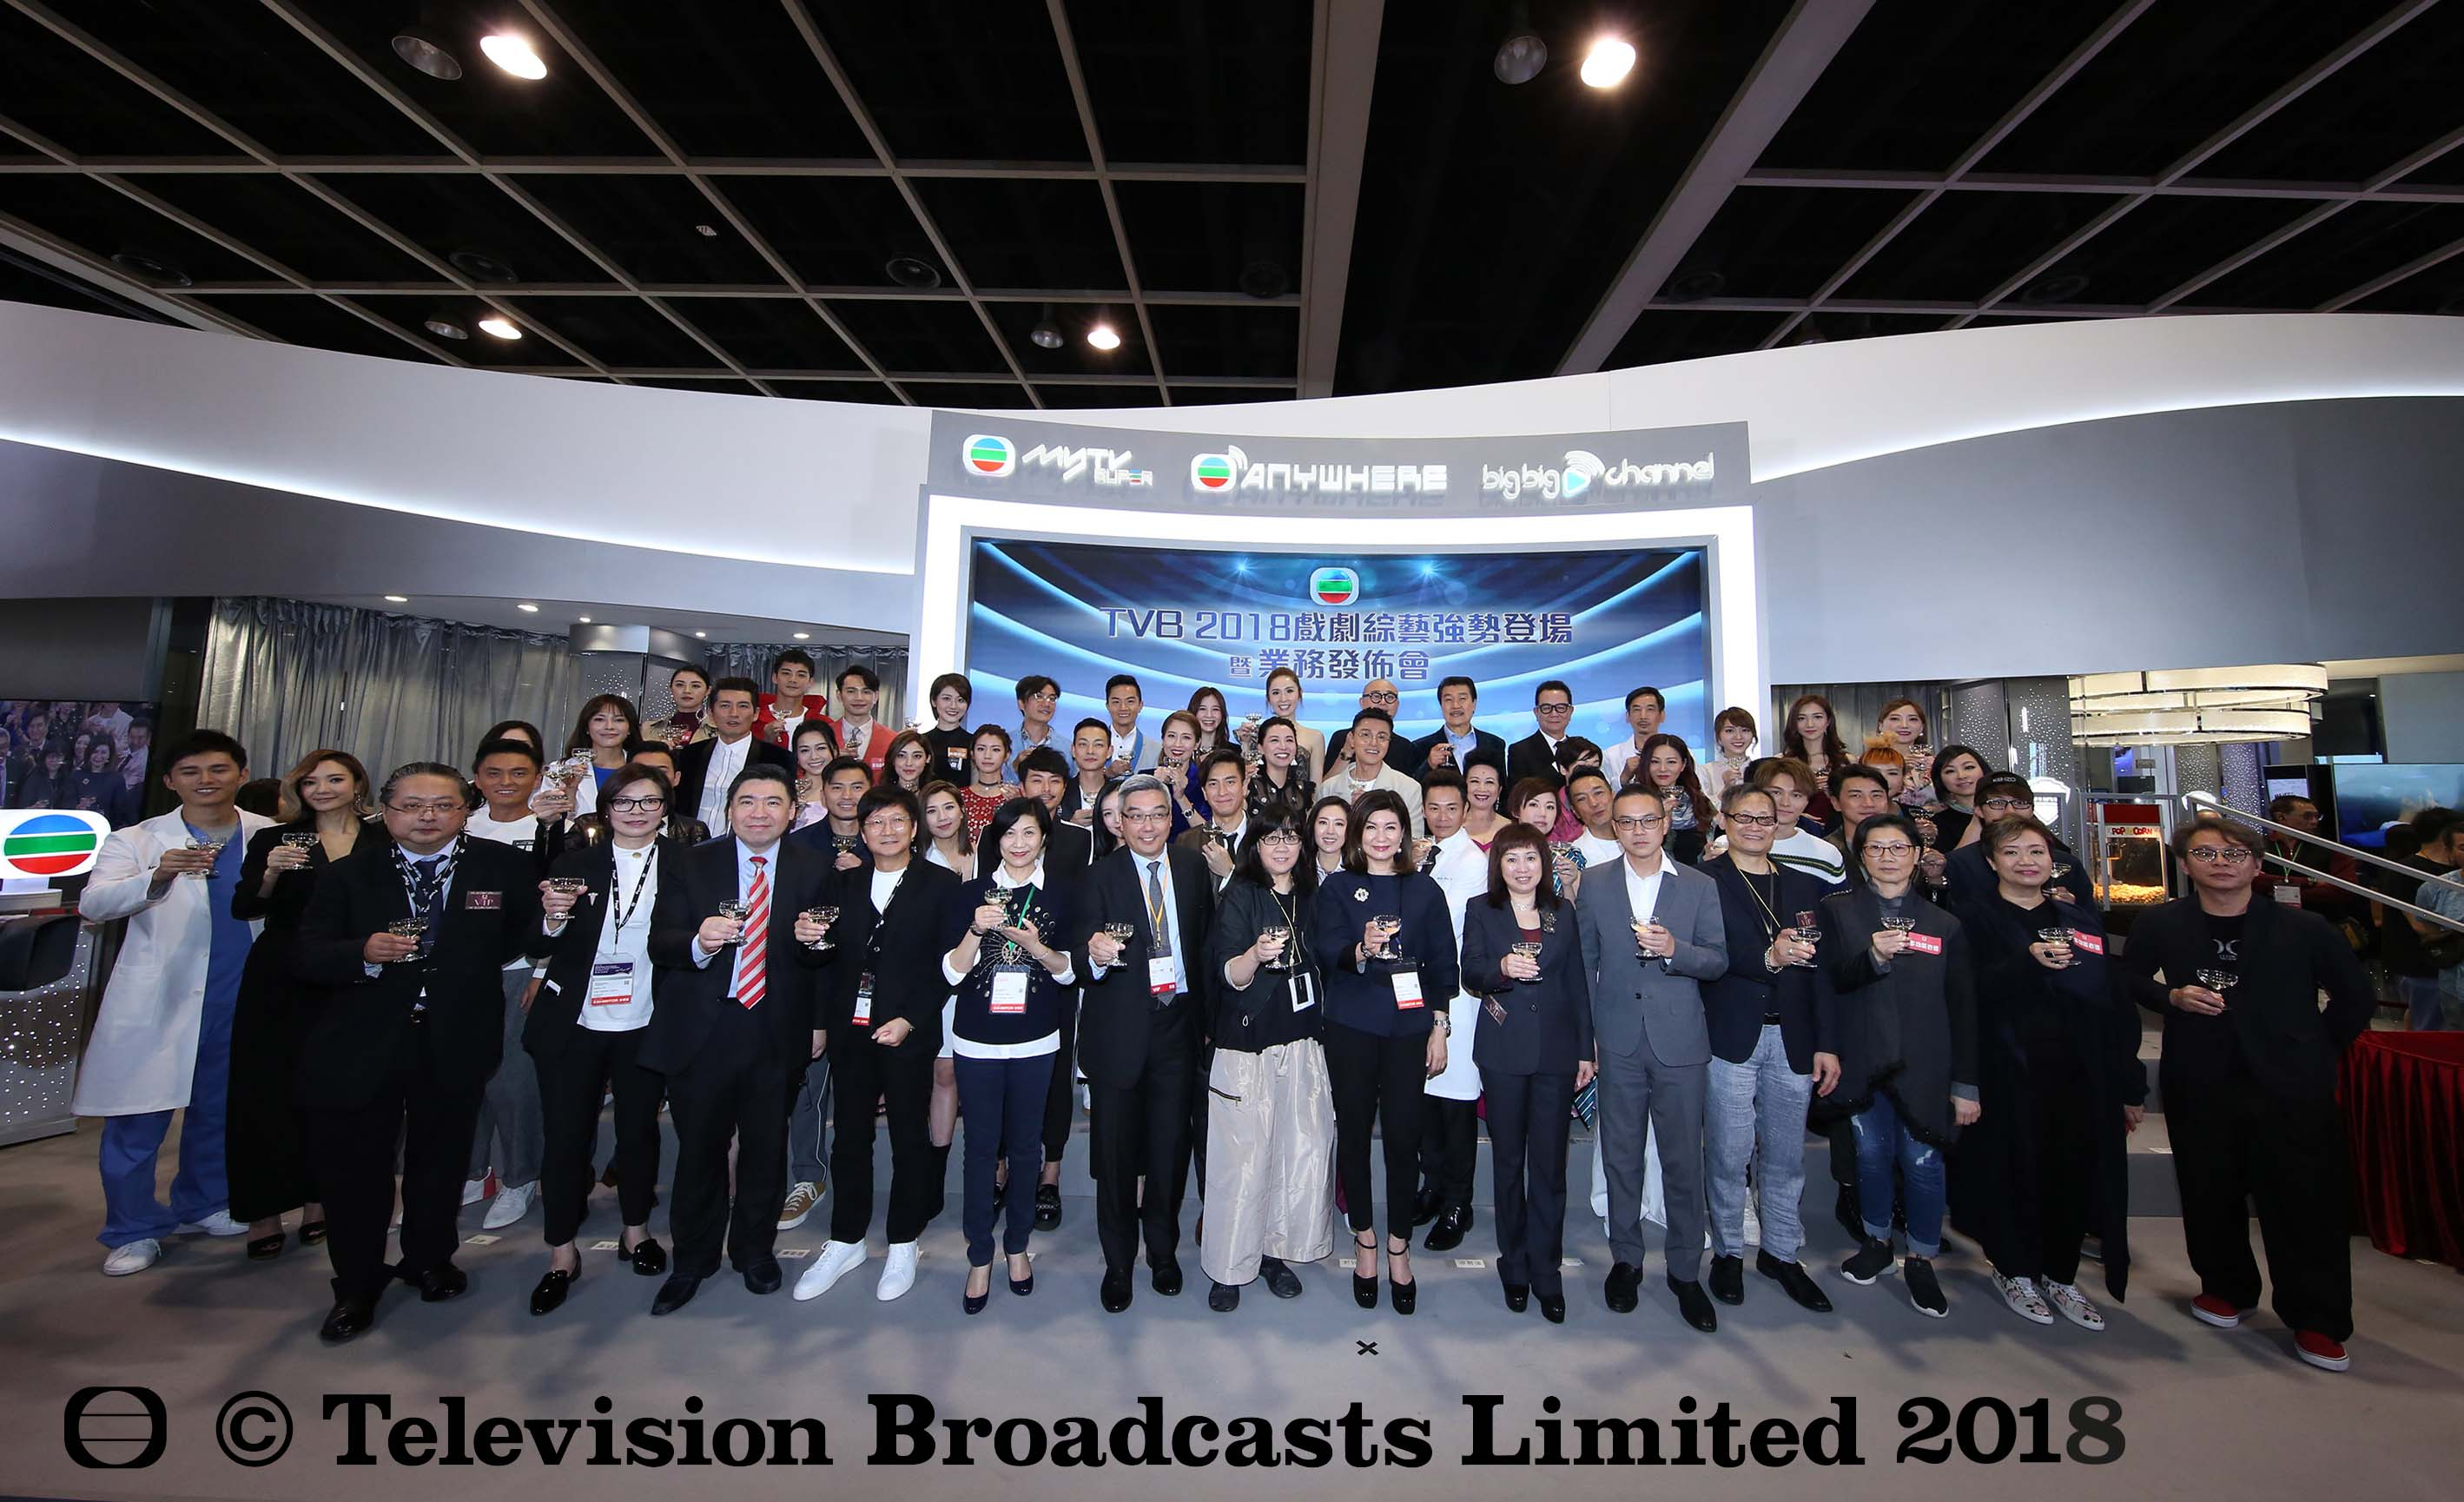 TVB – Star parade of latest events and cross-sector collaboration